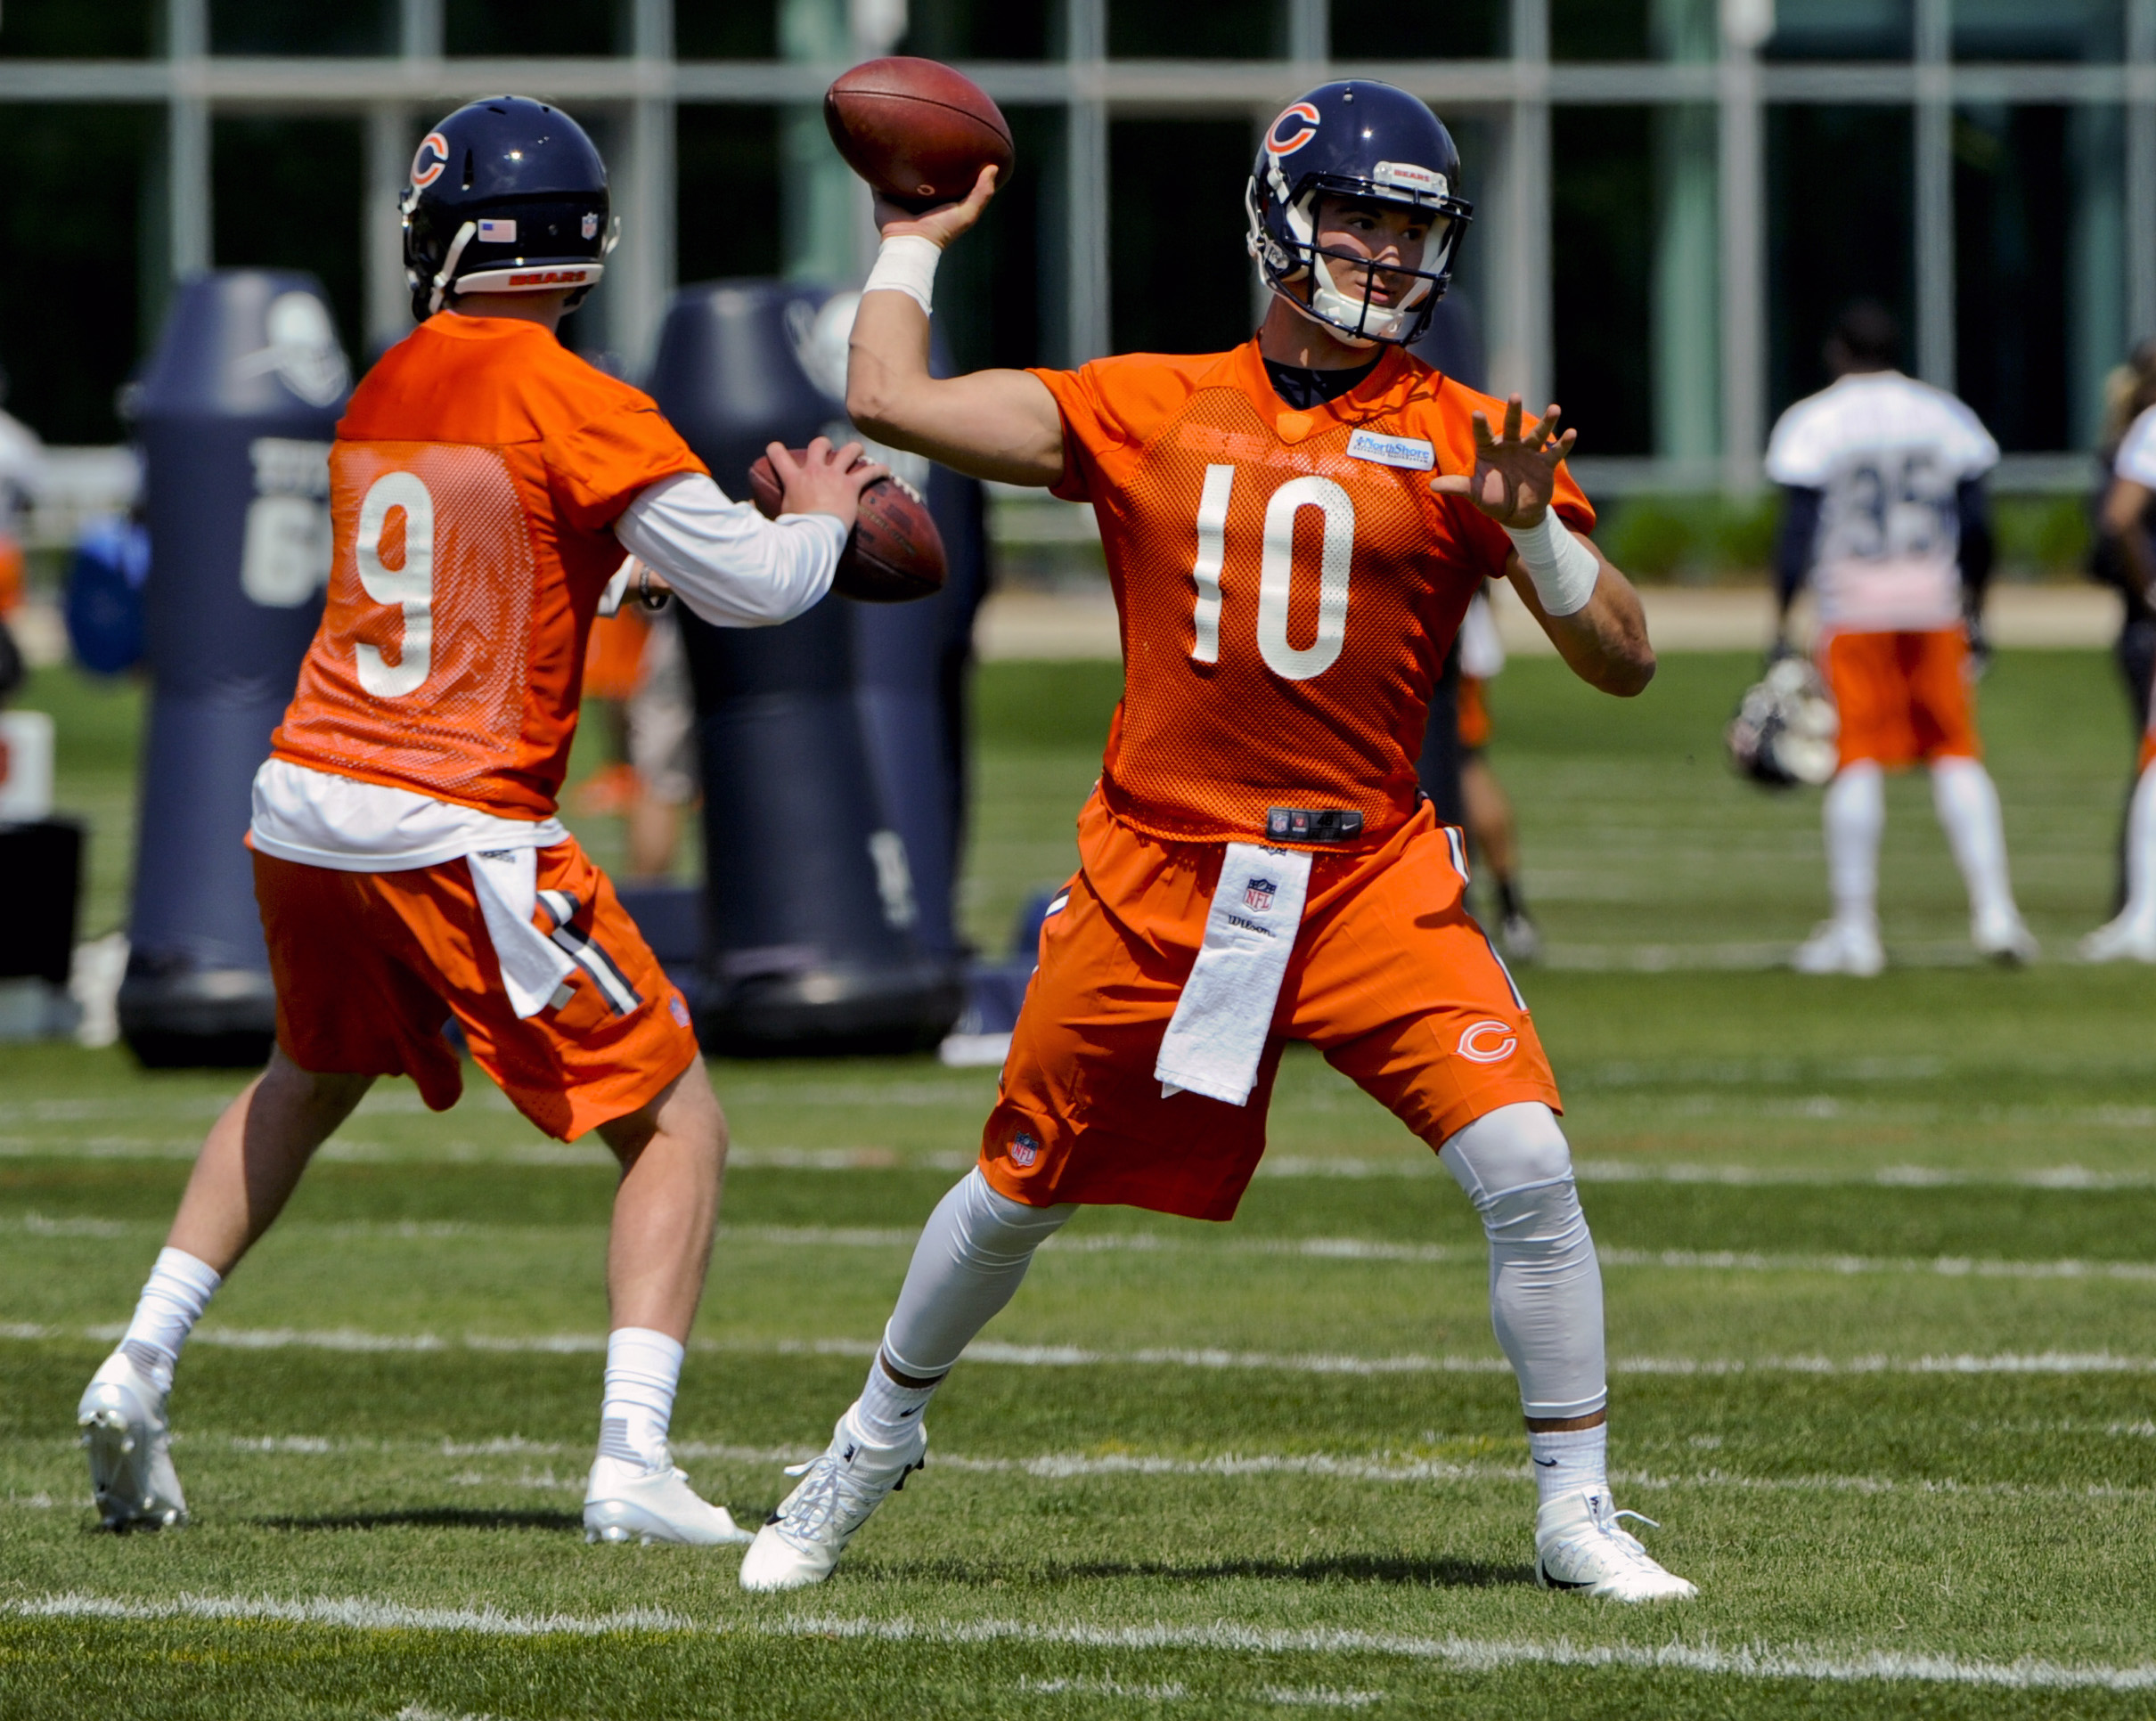 10053246-nfl-chicago-bears-rookie-minicamp